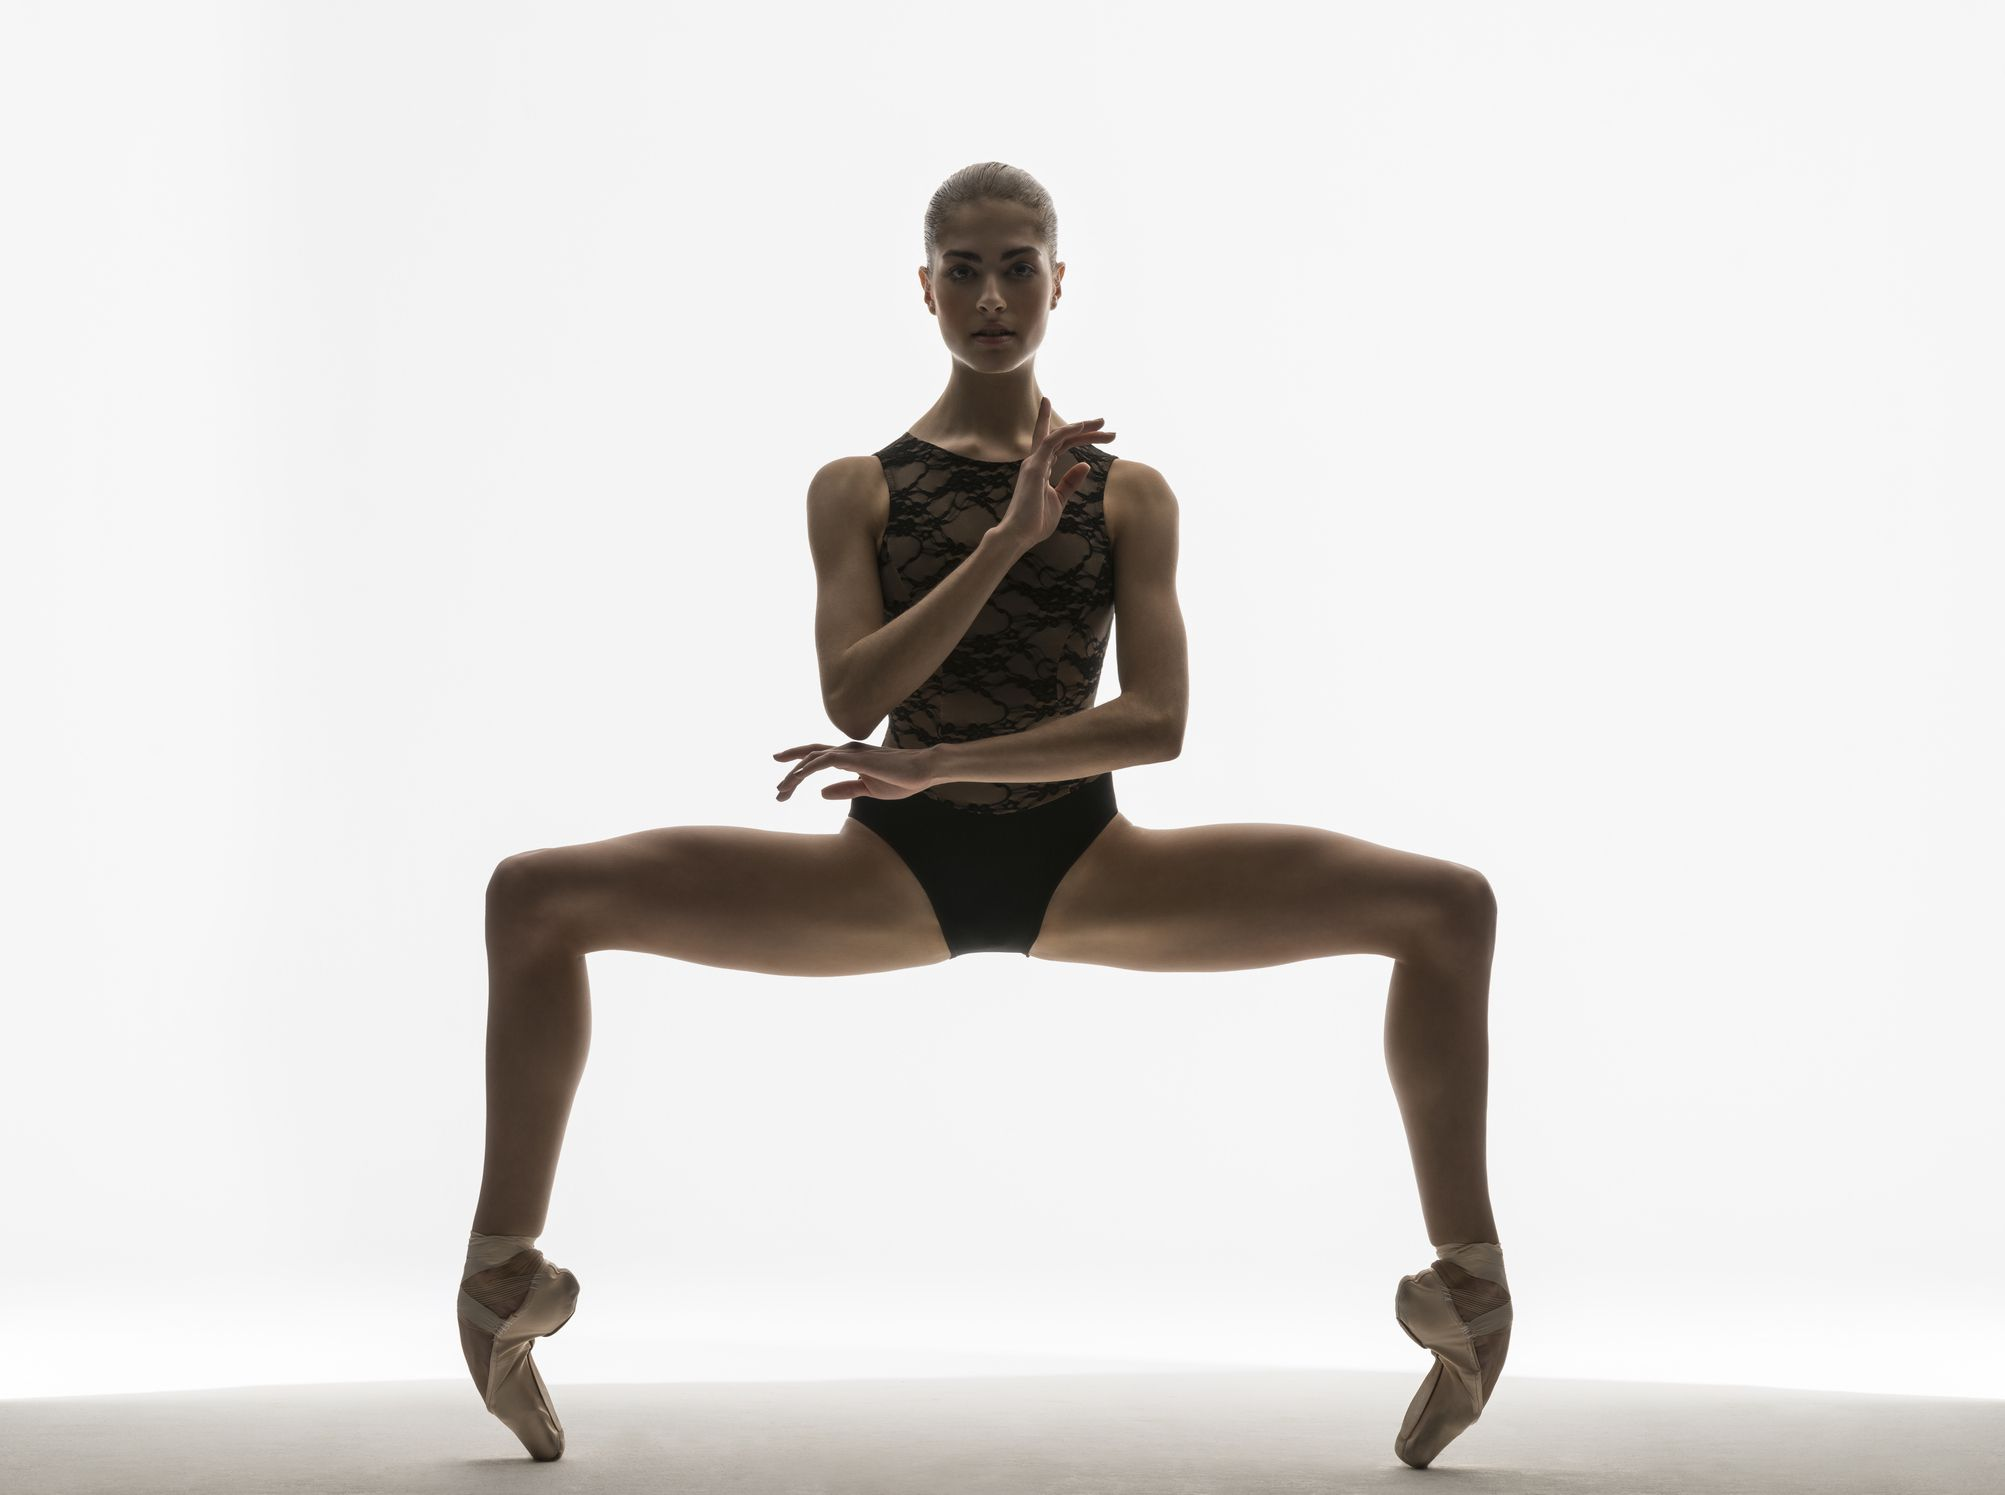 ballerina in grand plie on pointe looking at camera with her arms in front of her in studio